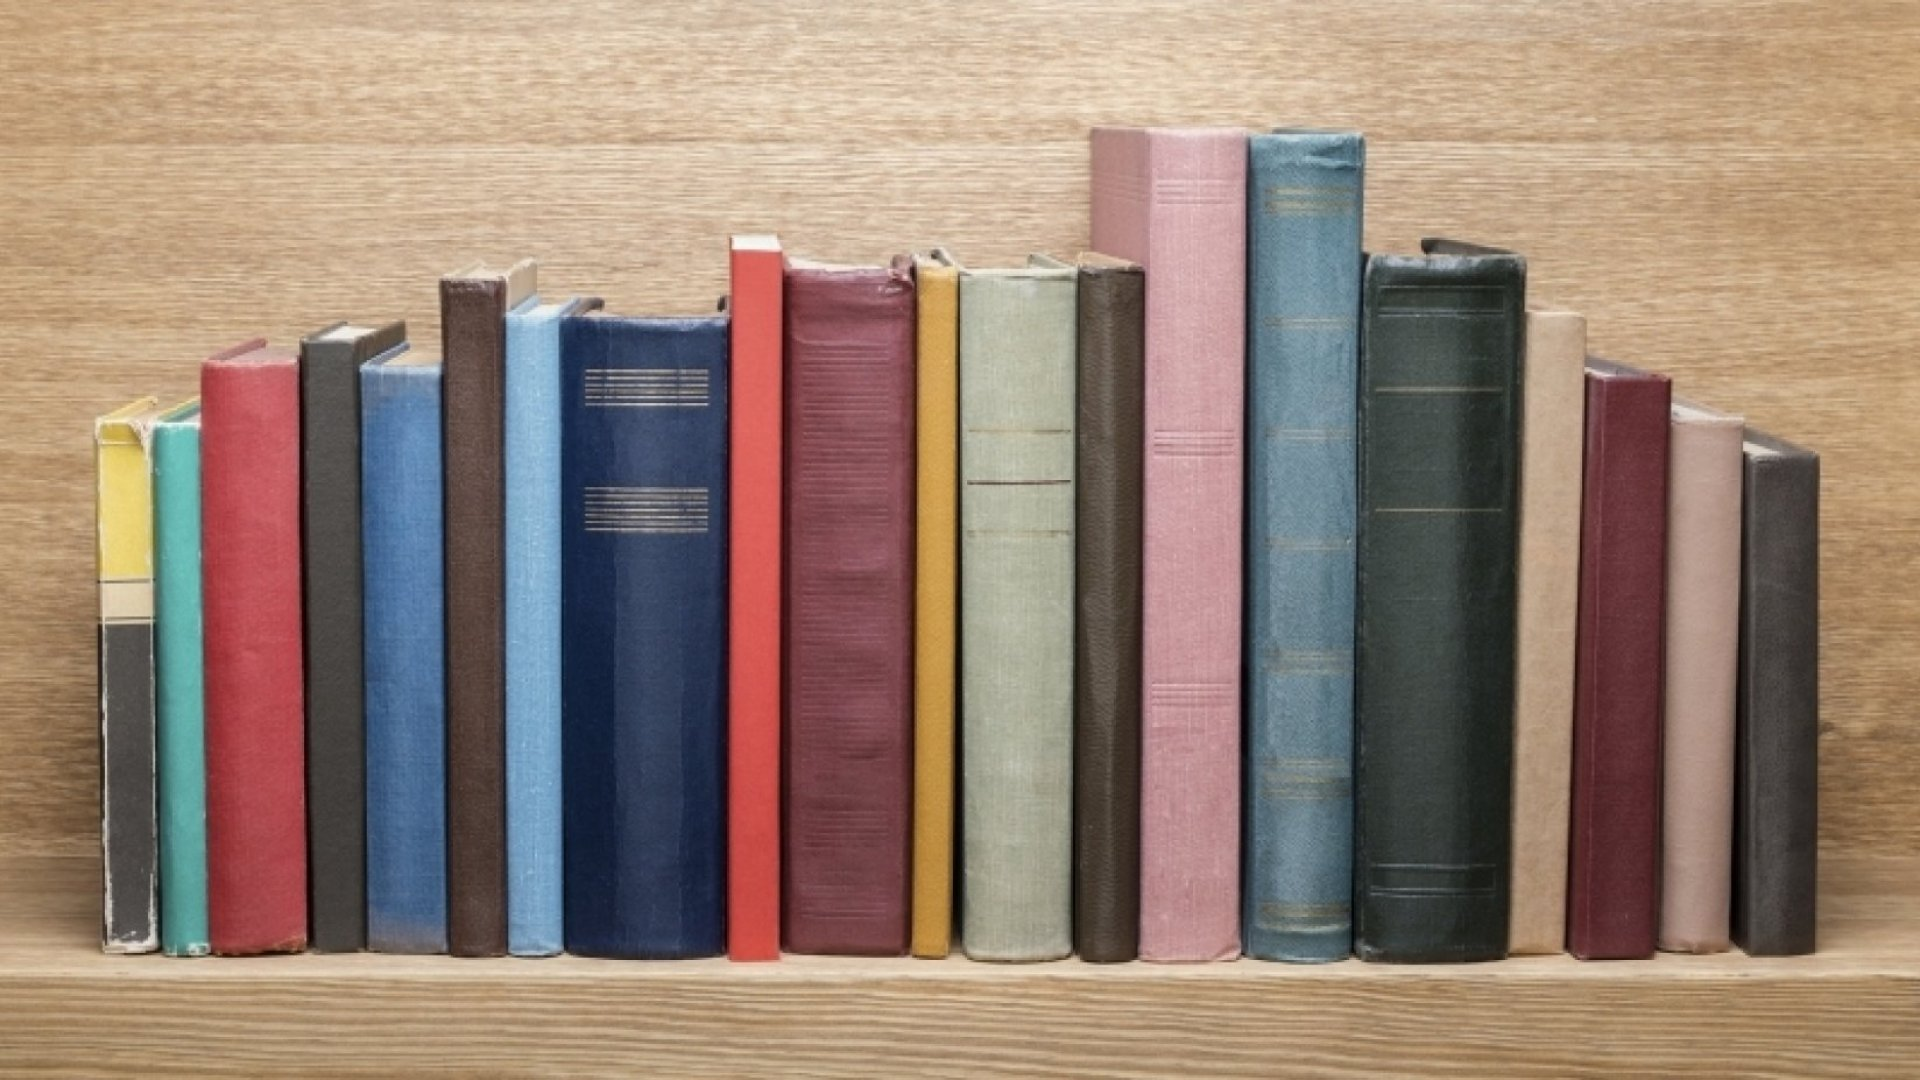 6 Inspiring Books That Will Shape Your Success